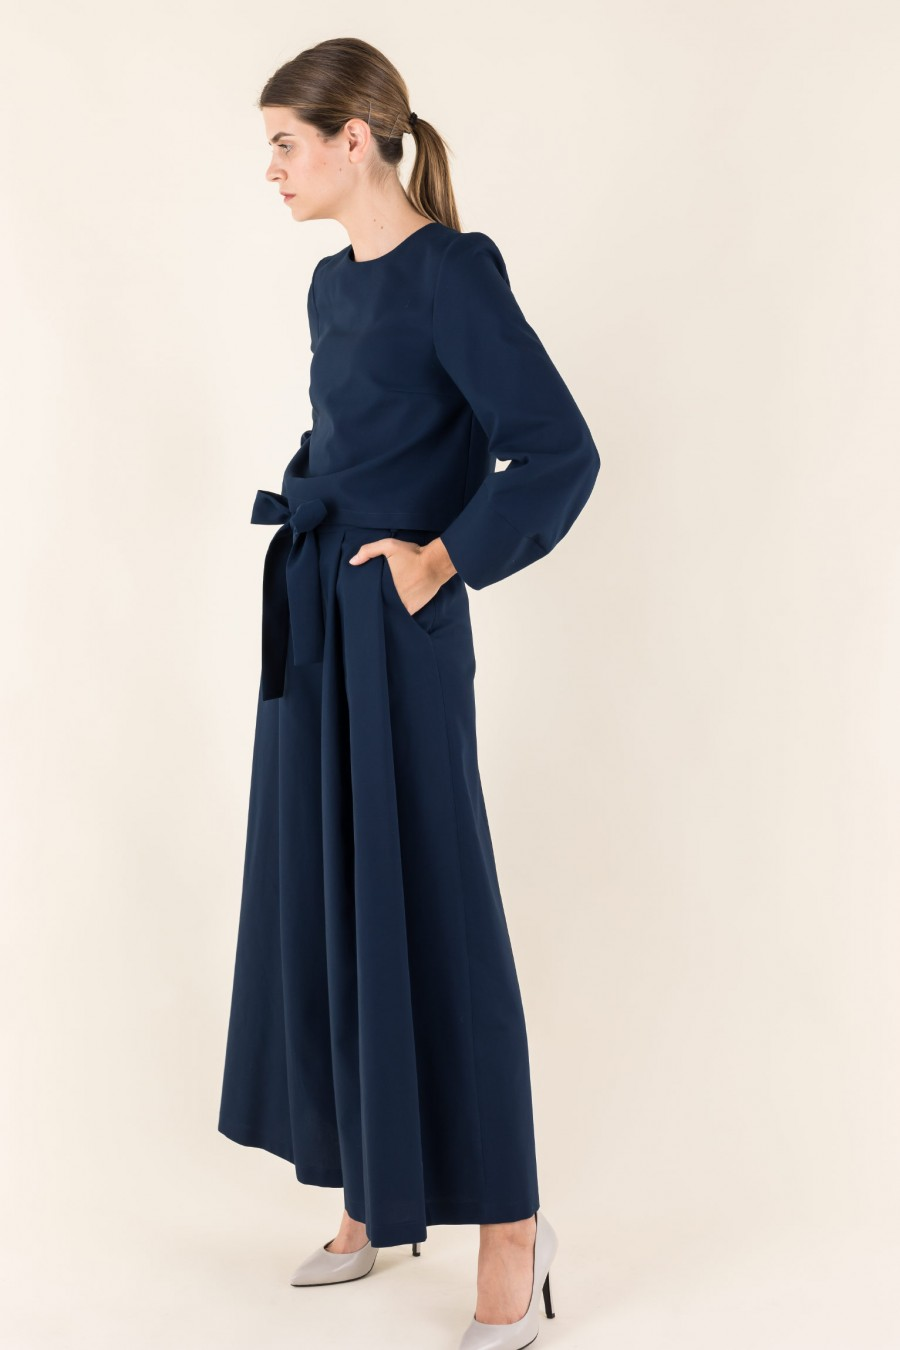 Blue wide trousers with belt and bow